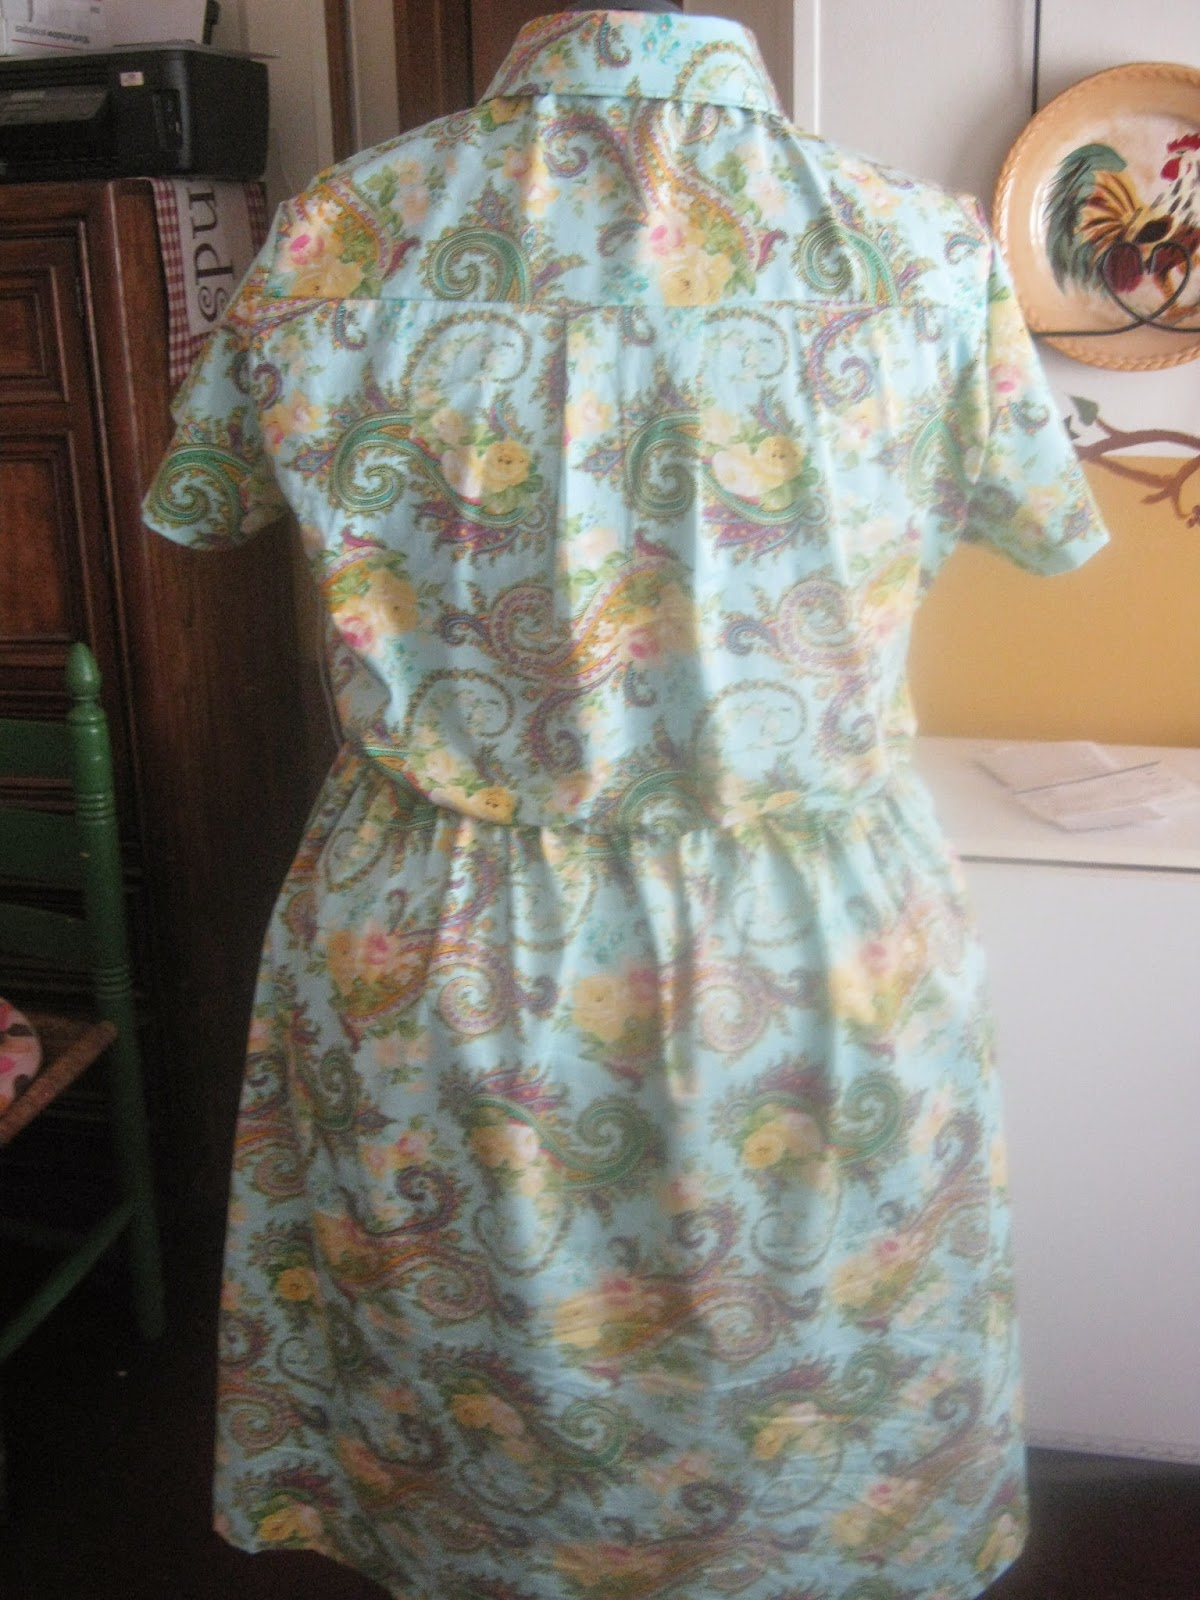 New Look A6180 Aqua Paisley Shirt Dress Back View www.sewplus.blogspot.com